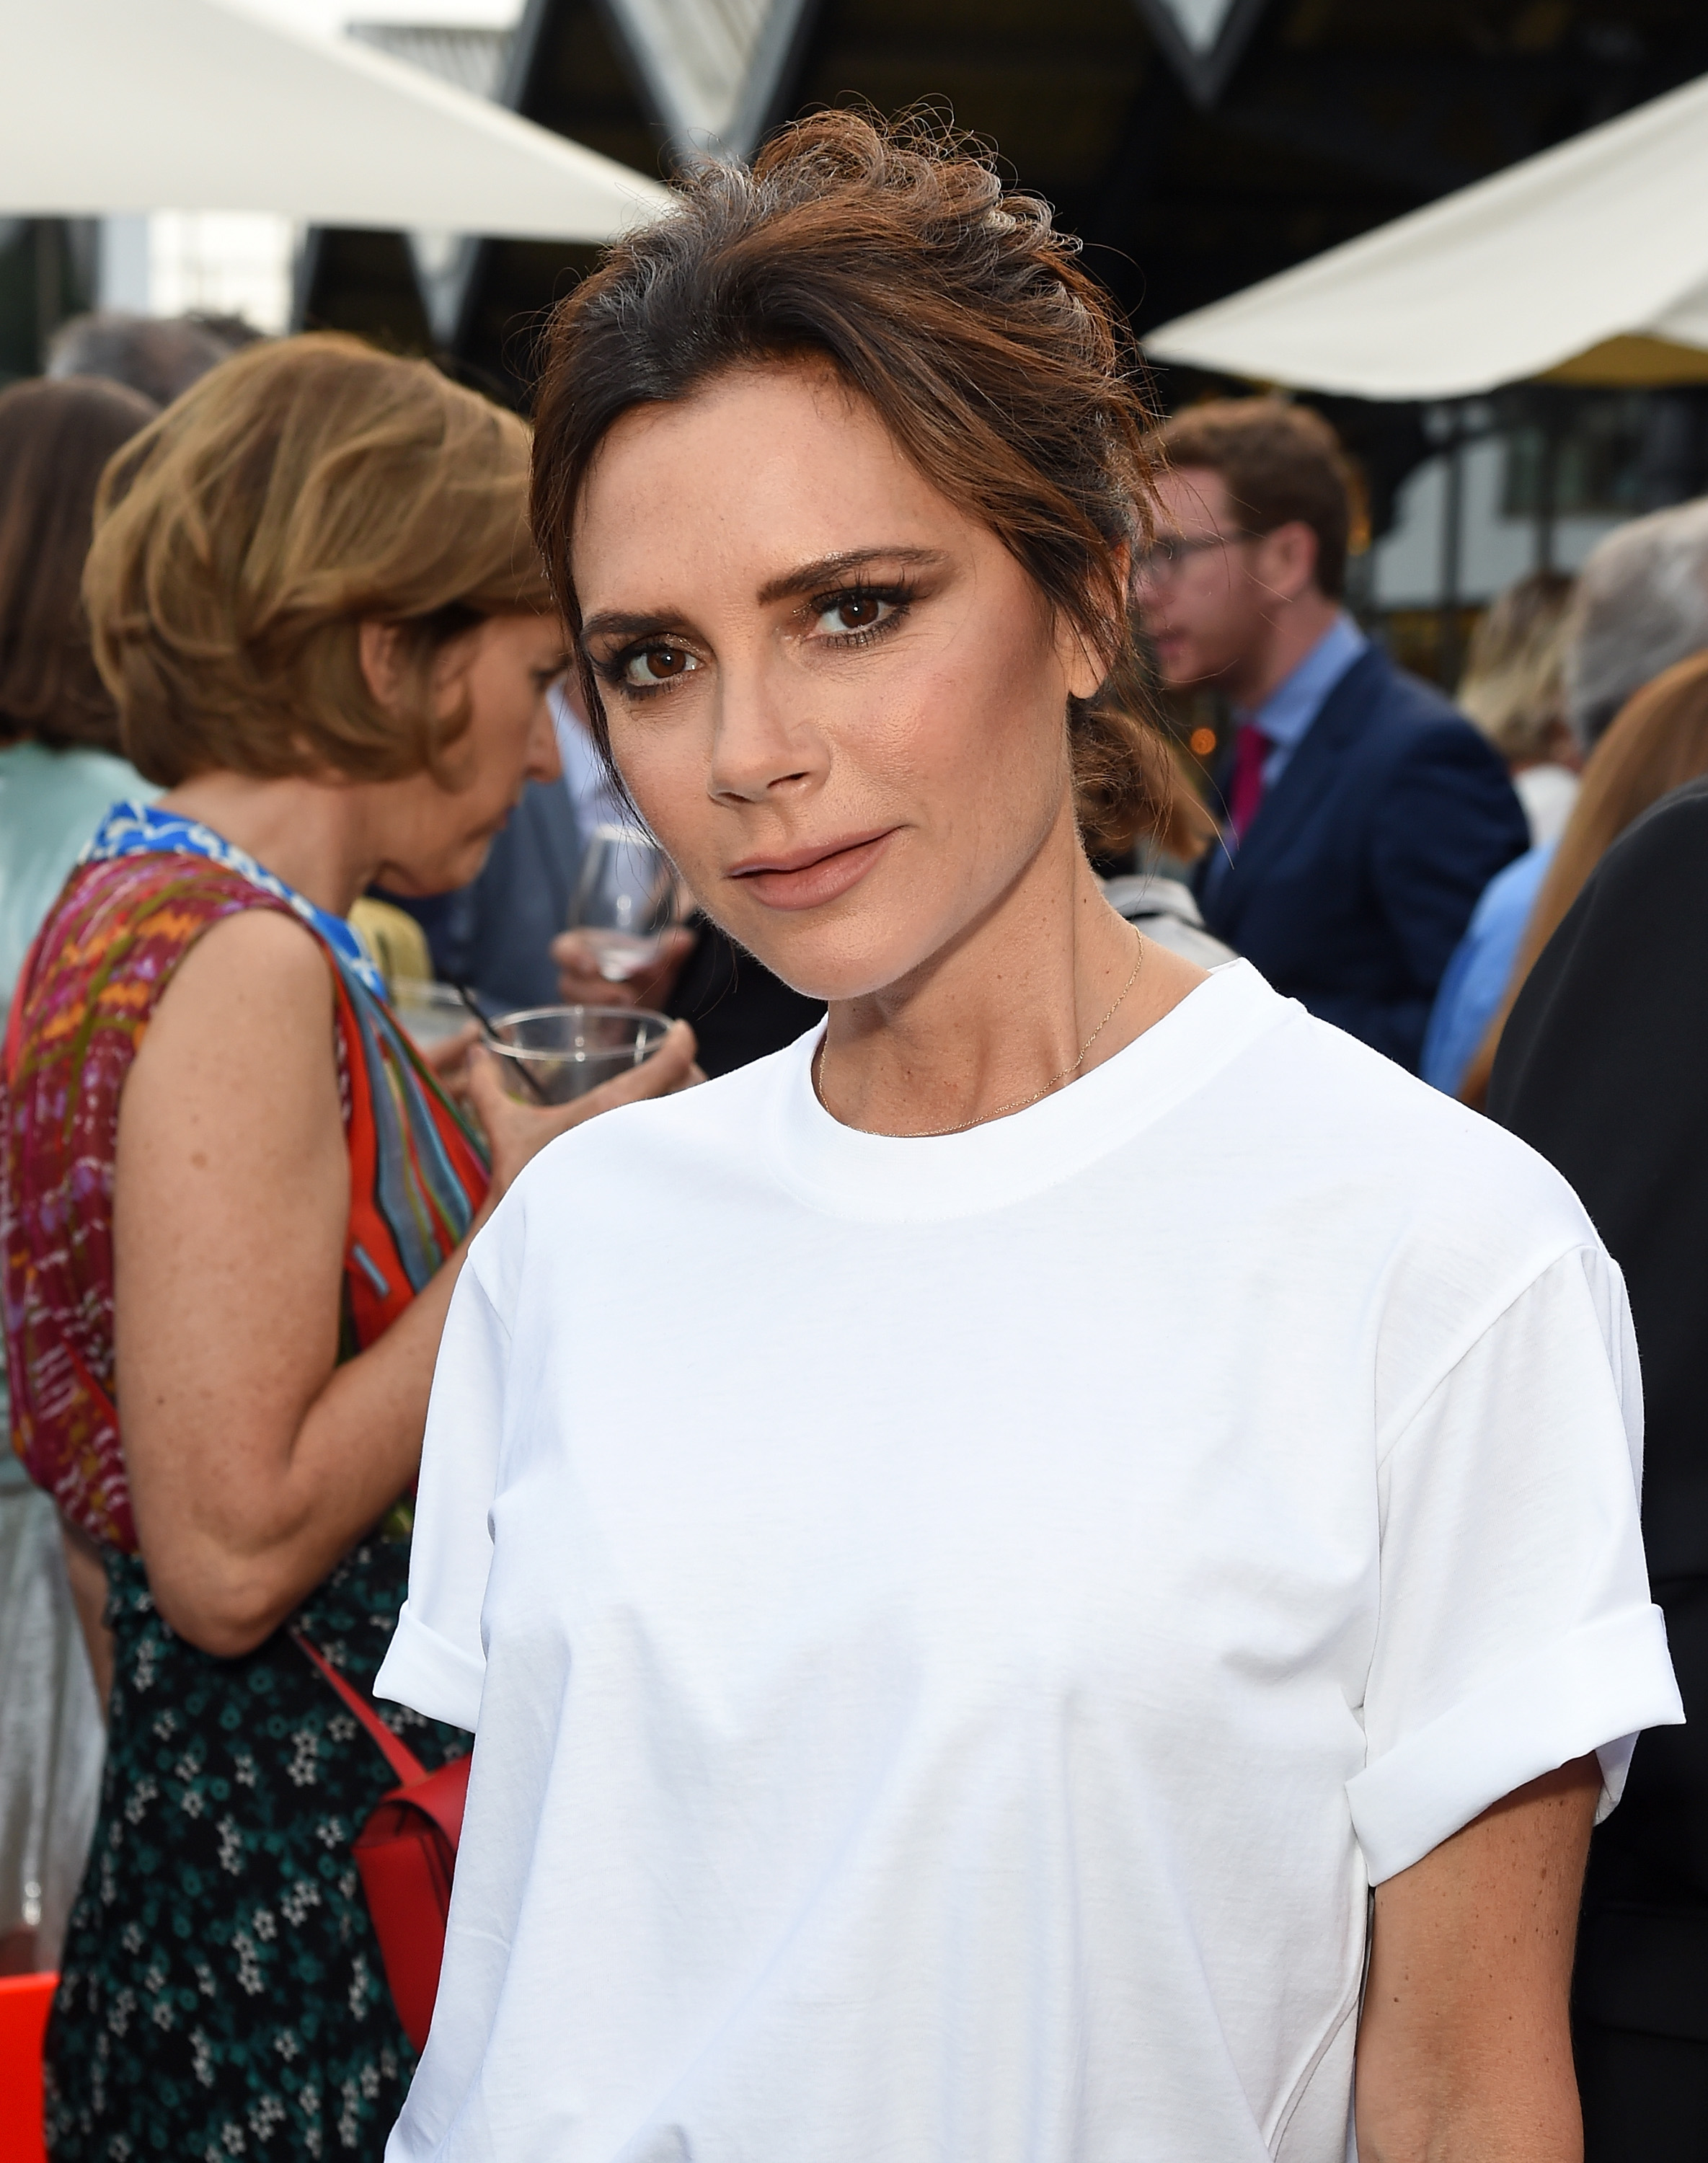 AB Victoria Beckham Getty Images